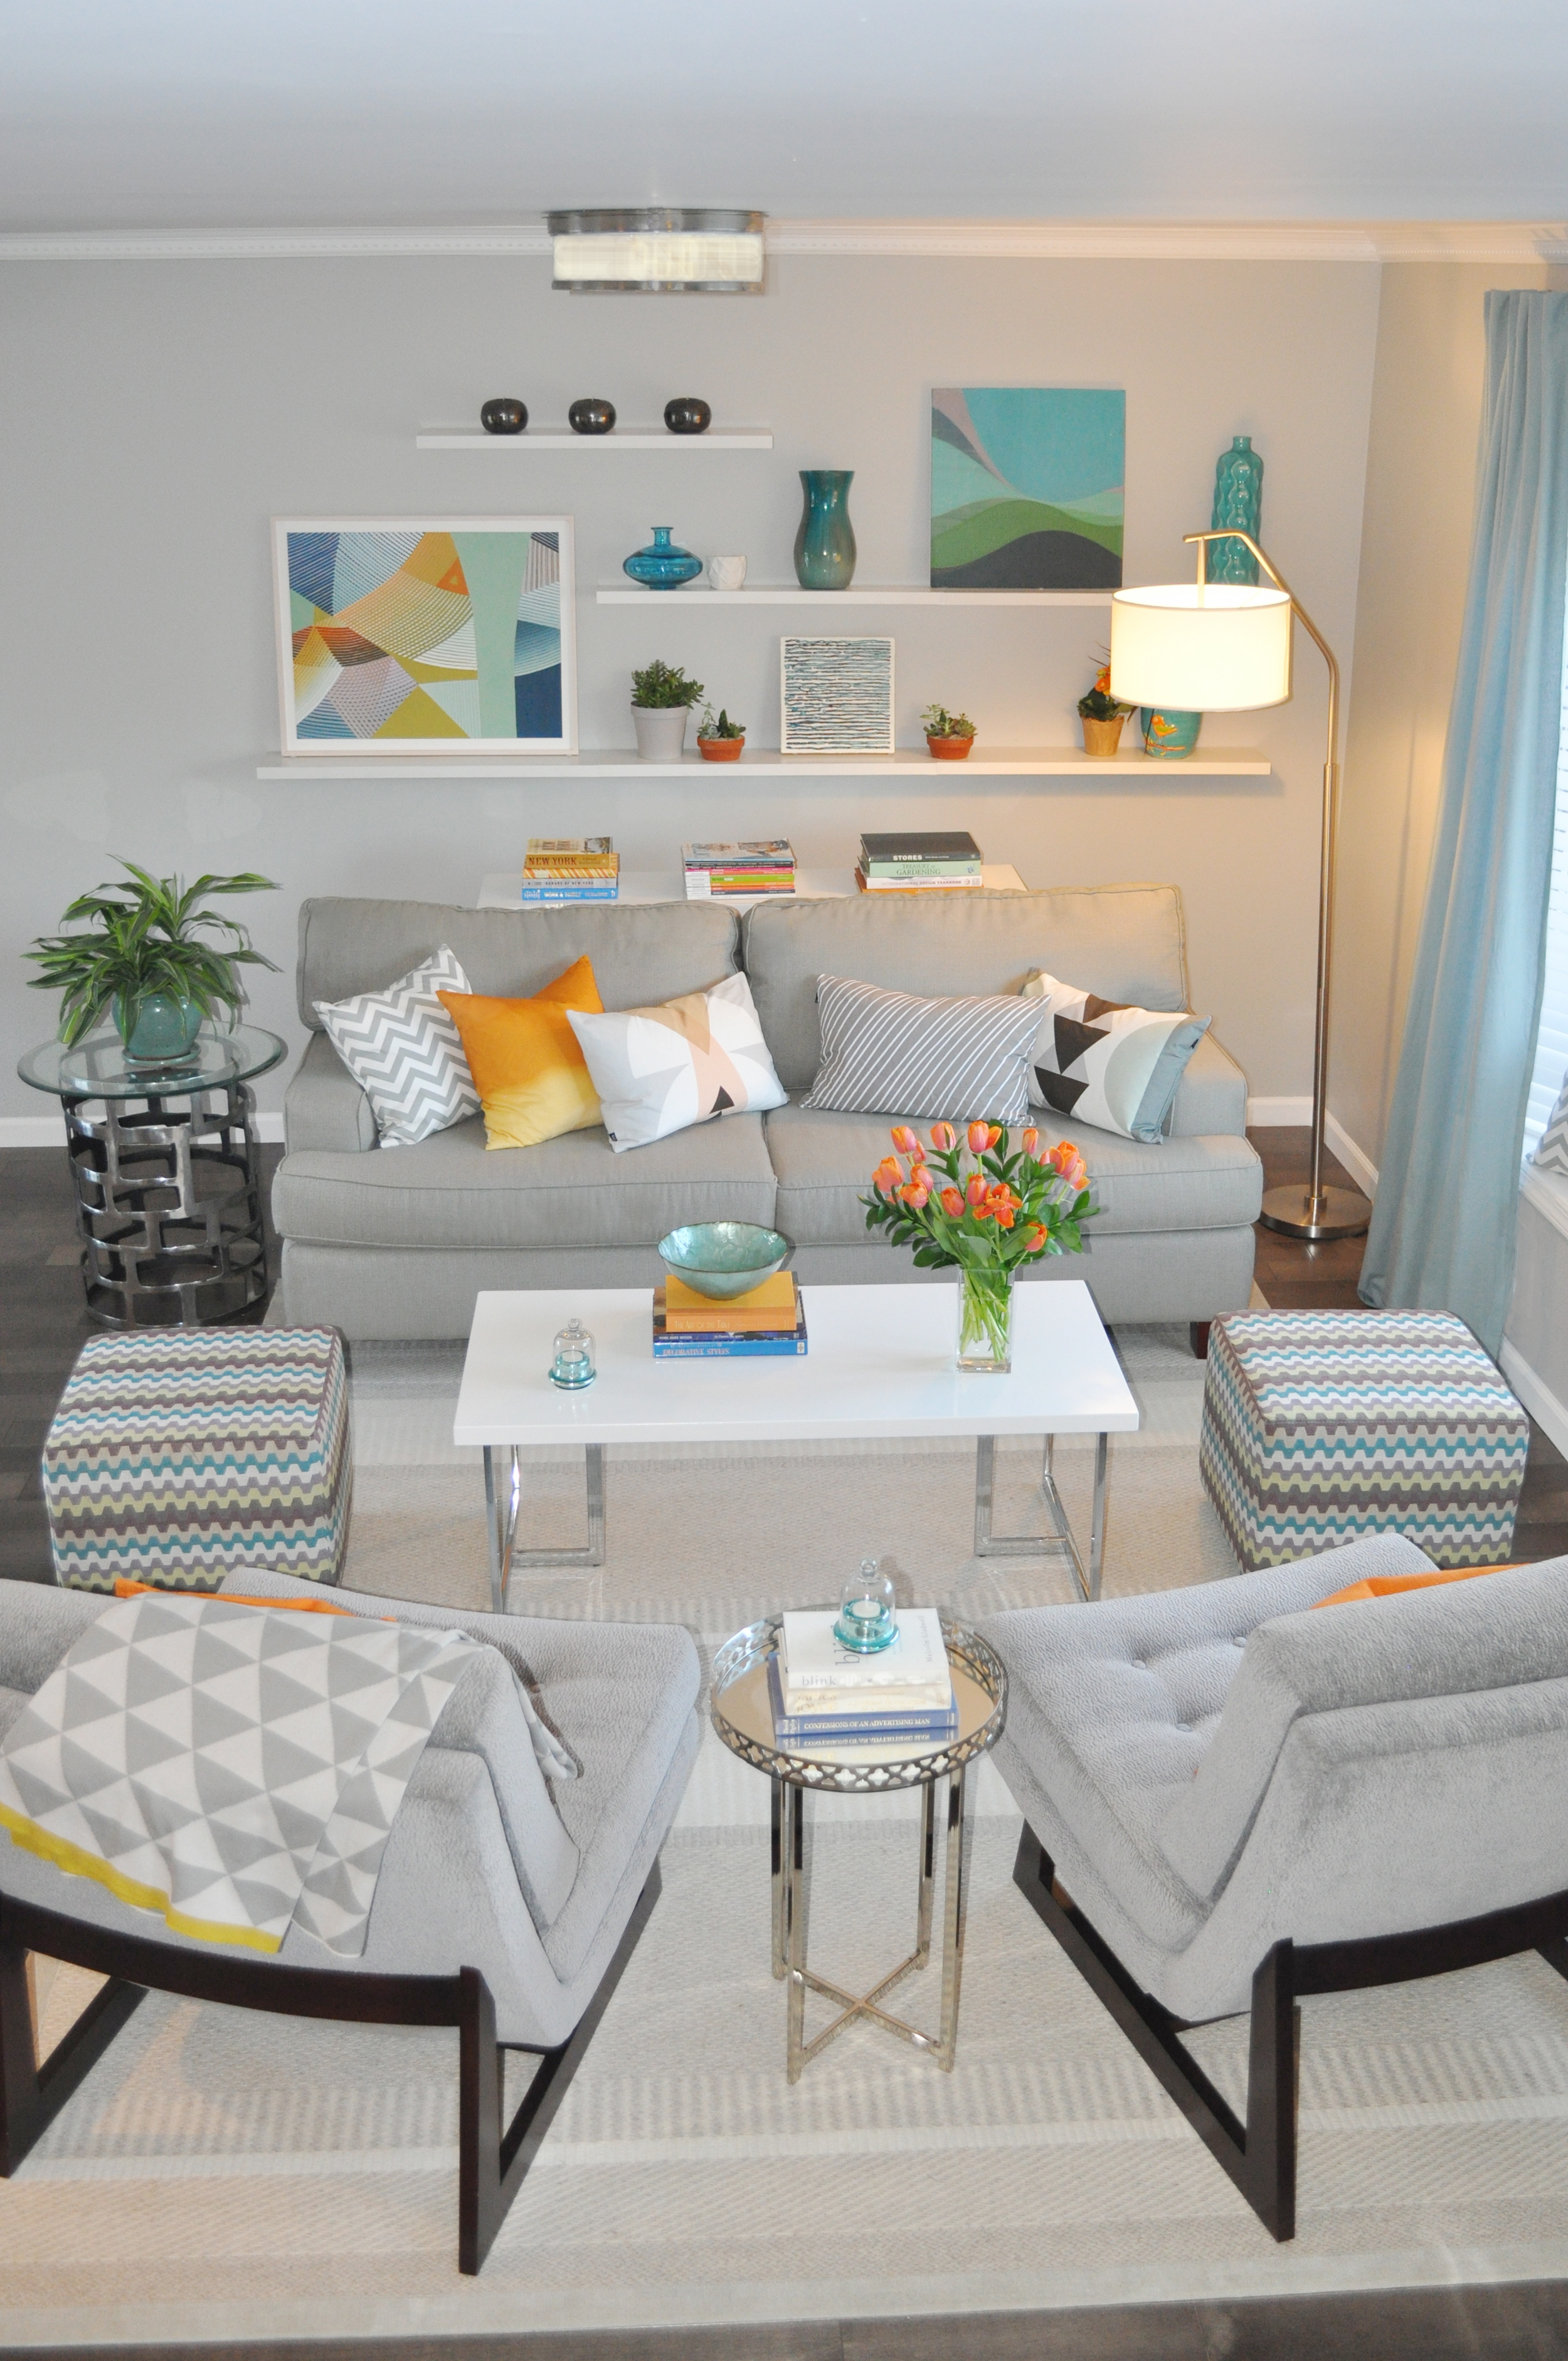 Kim Mitchell Production Designer_HGTV_Buying and Selling with The Property Brothers_Season 3 _Episode 316_Living Room Design_Pop of Color with Gray_Art by Kenise Barnes Gallery_Kontrast_Evas Decorating Chairs_Scandecor Rug_Churchill__Hudson Valley.jpg